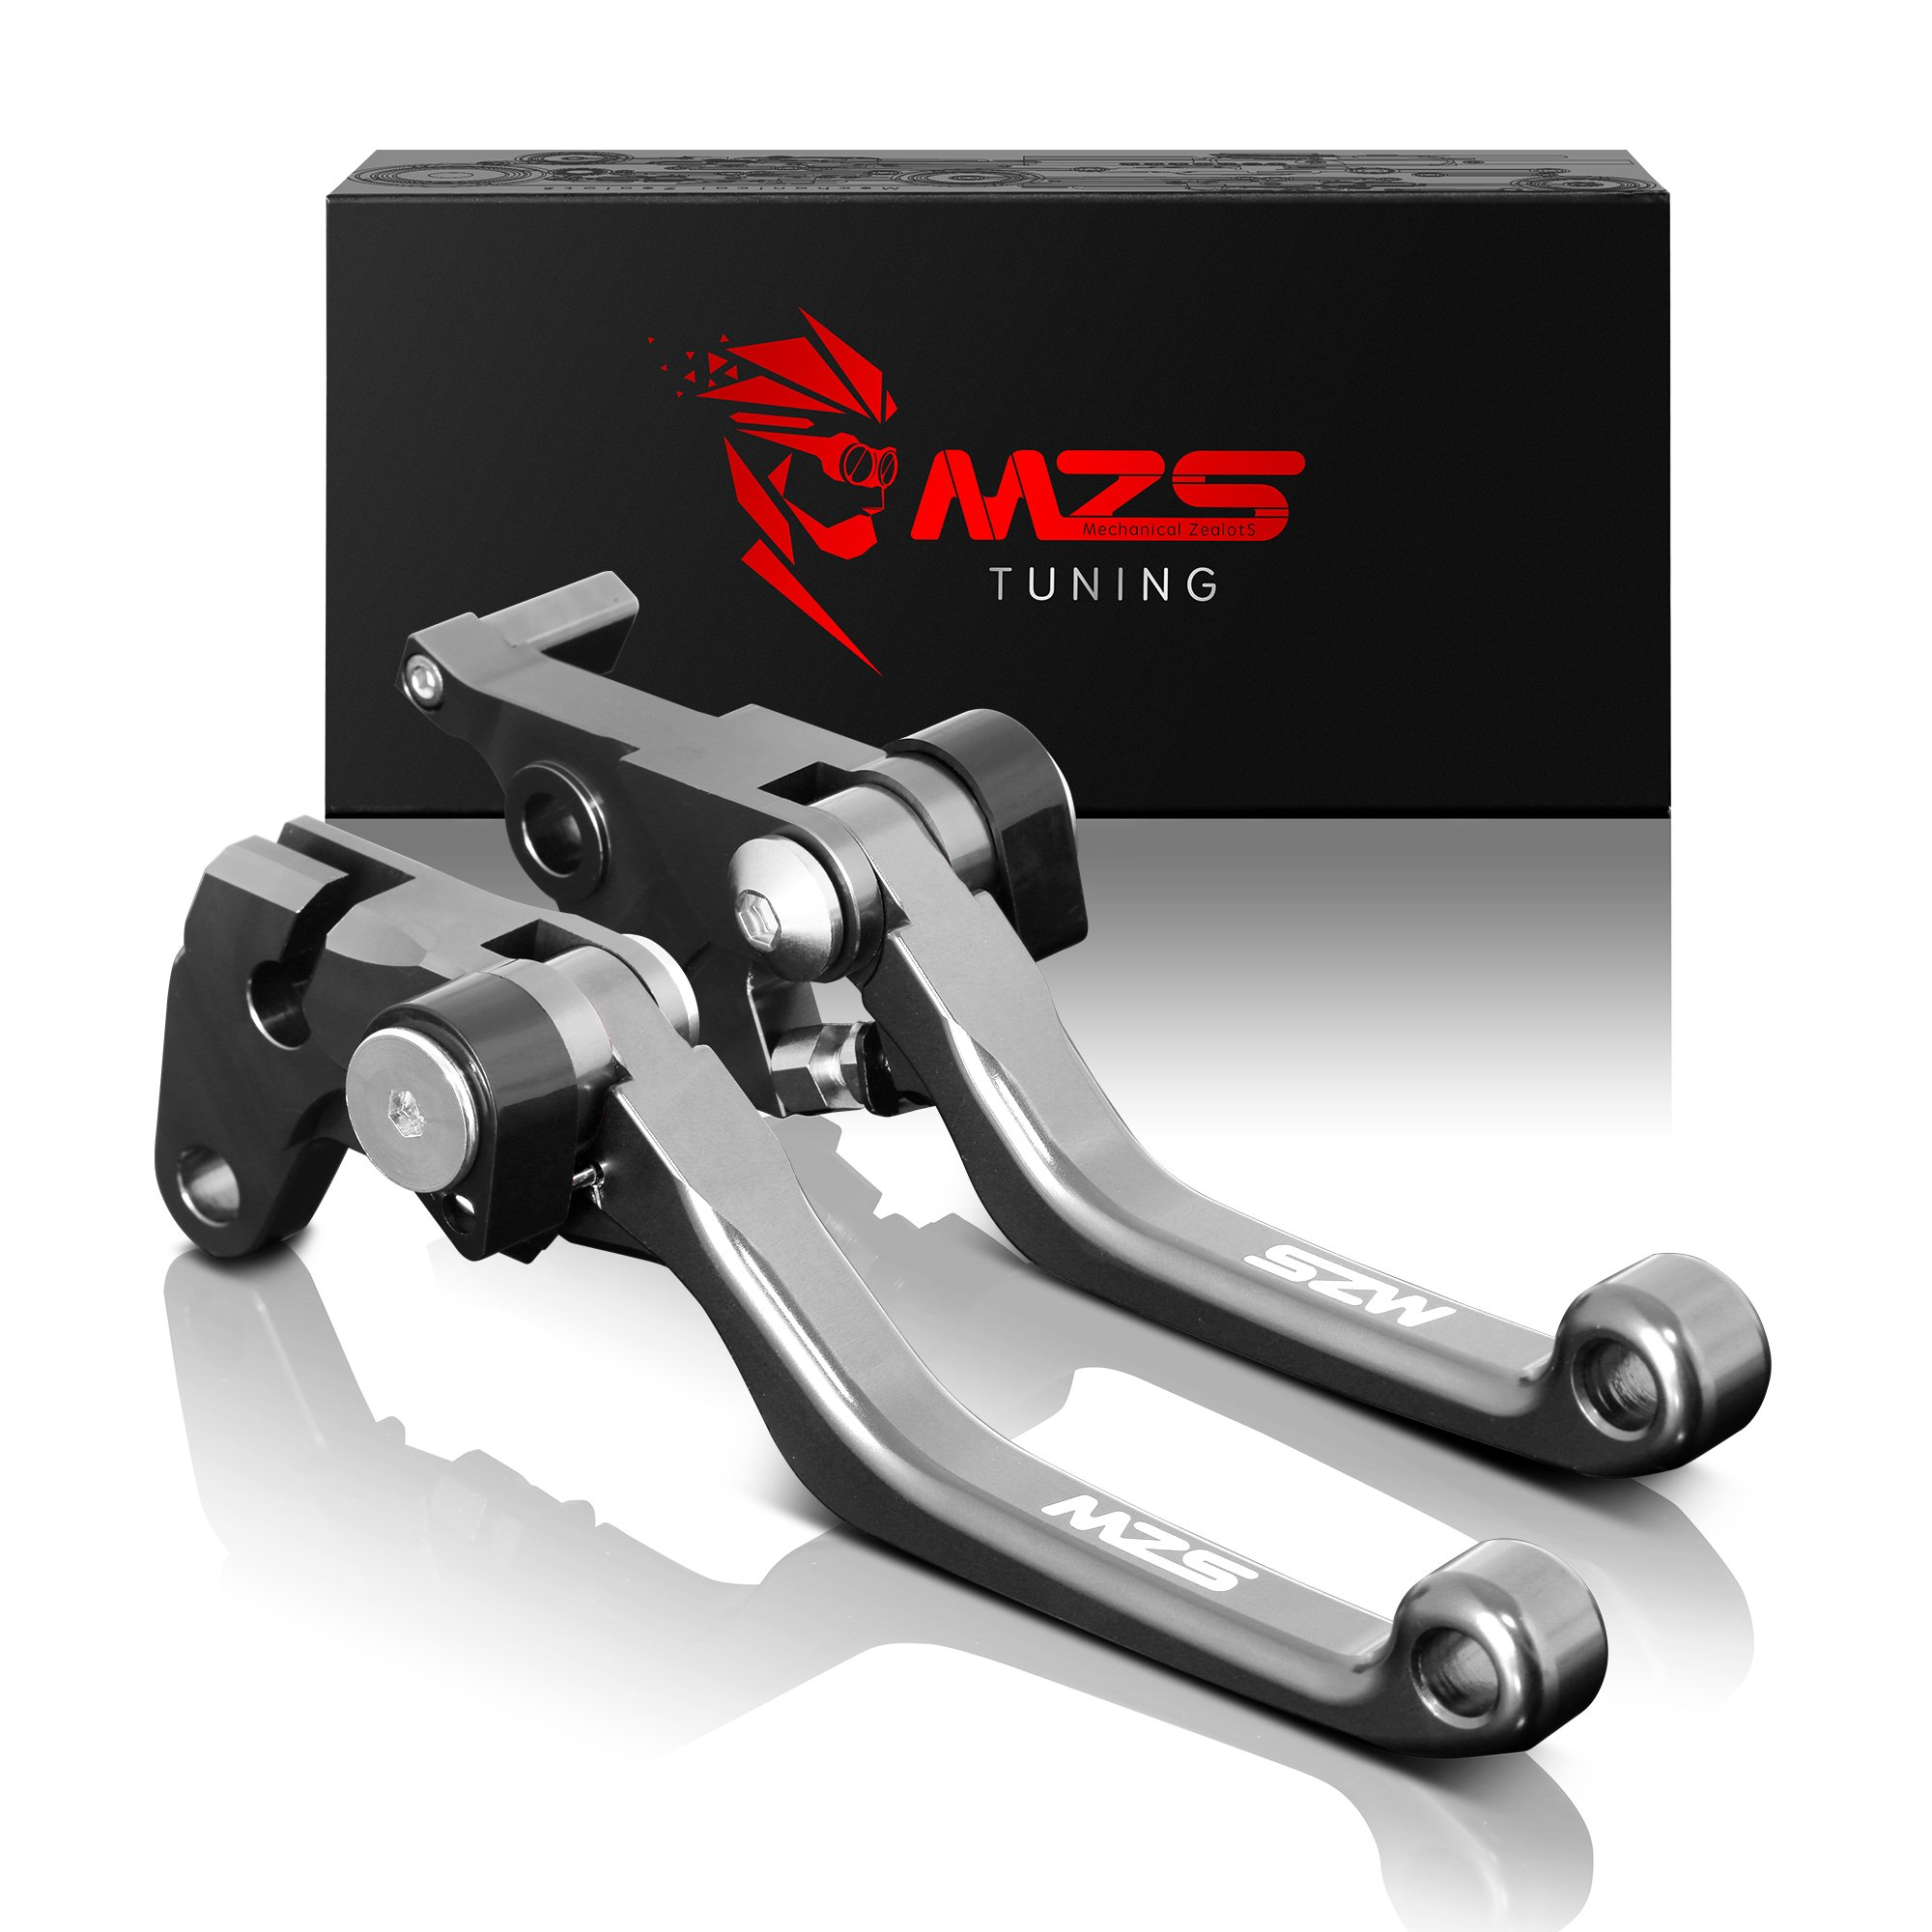 MZS Pivot Levers Brake Clutch Foldable CNC for Honda CRF150F CRF 150F 2003-2018/ CRF230F CRF 230F 2003-2018 (Gray) by MZS